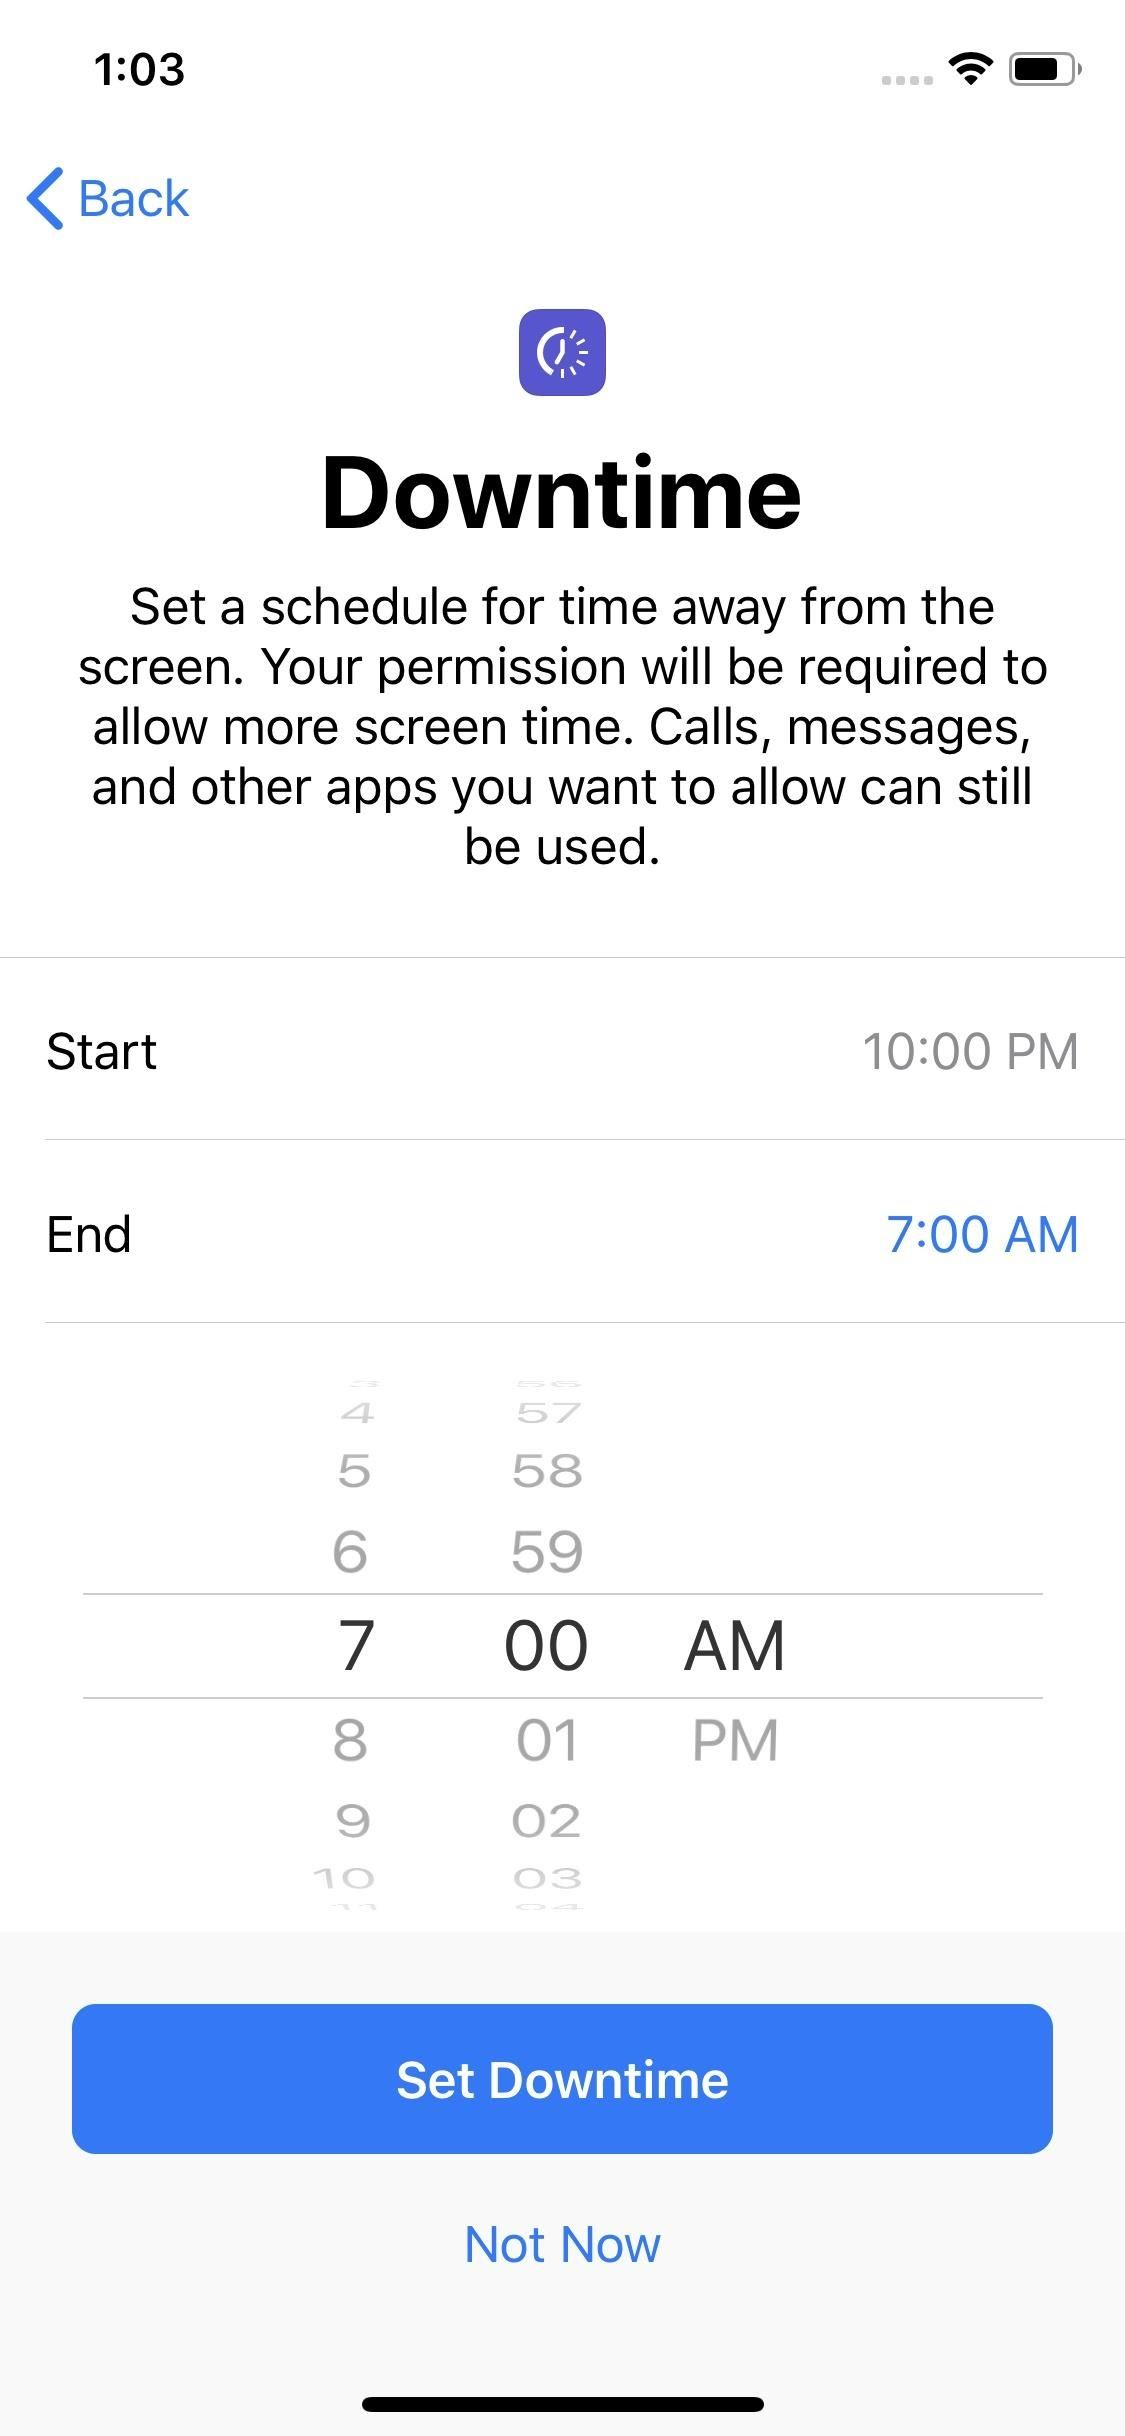 How to Enable Downtime on Your iPhone to Help Stay Distraction-Free